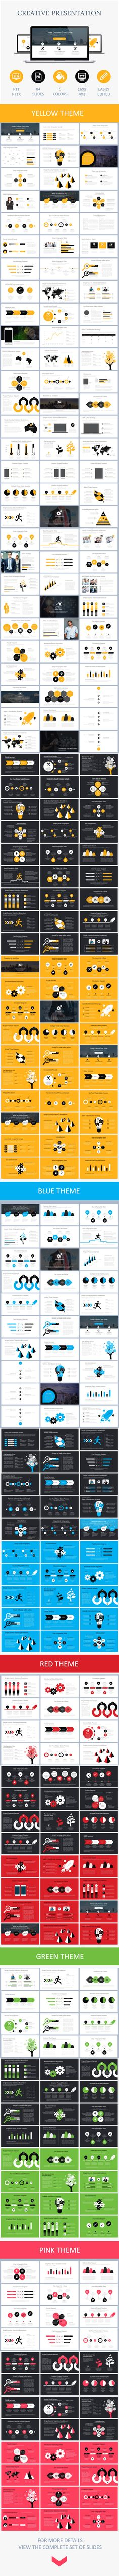 Creative Presentation PowerPoint Template #powerpoint #powerpointtemplate Download: http://graphicriver.net/item/creative-presentation/9322885?ref=ksioks